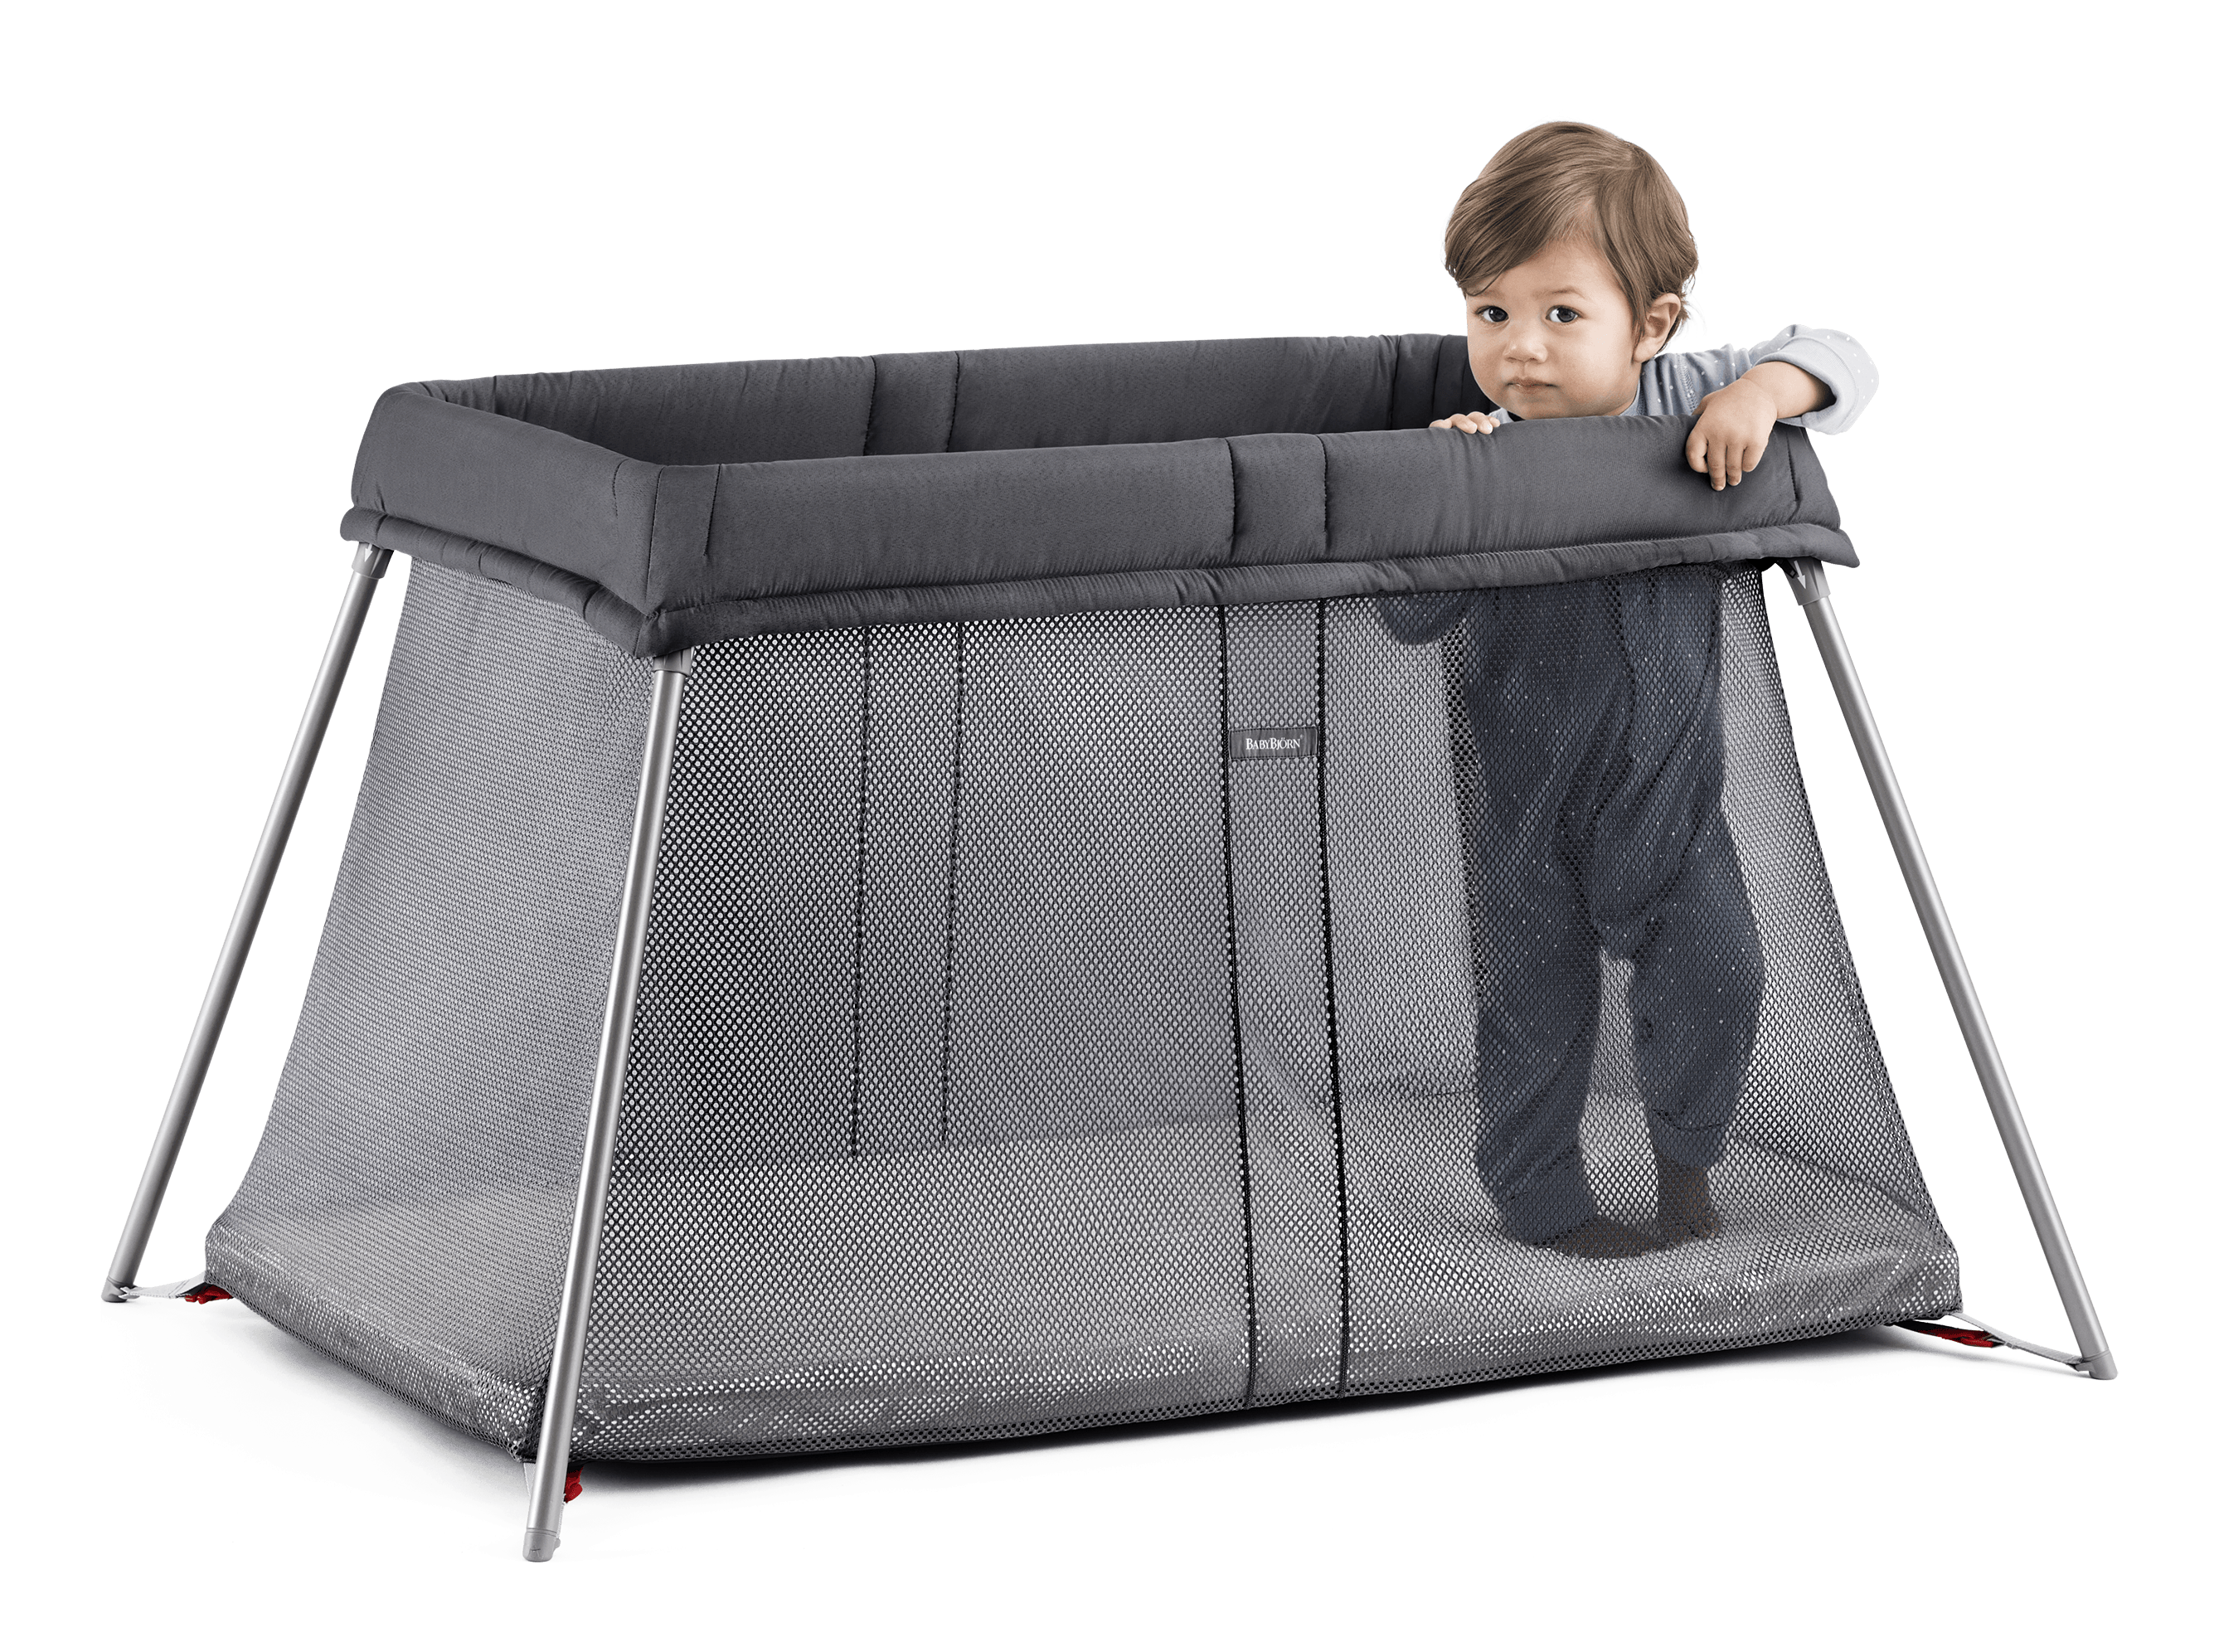 small travel cot for baby easy to use babybj rn. Black Bedroom Furniture Sets. Home Design Ideas